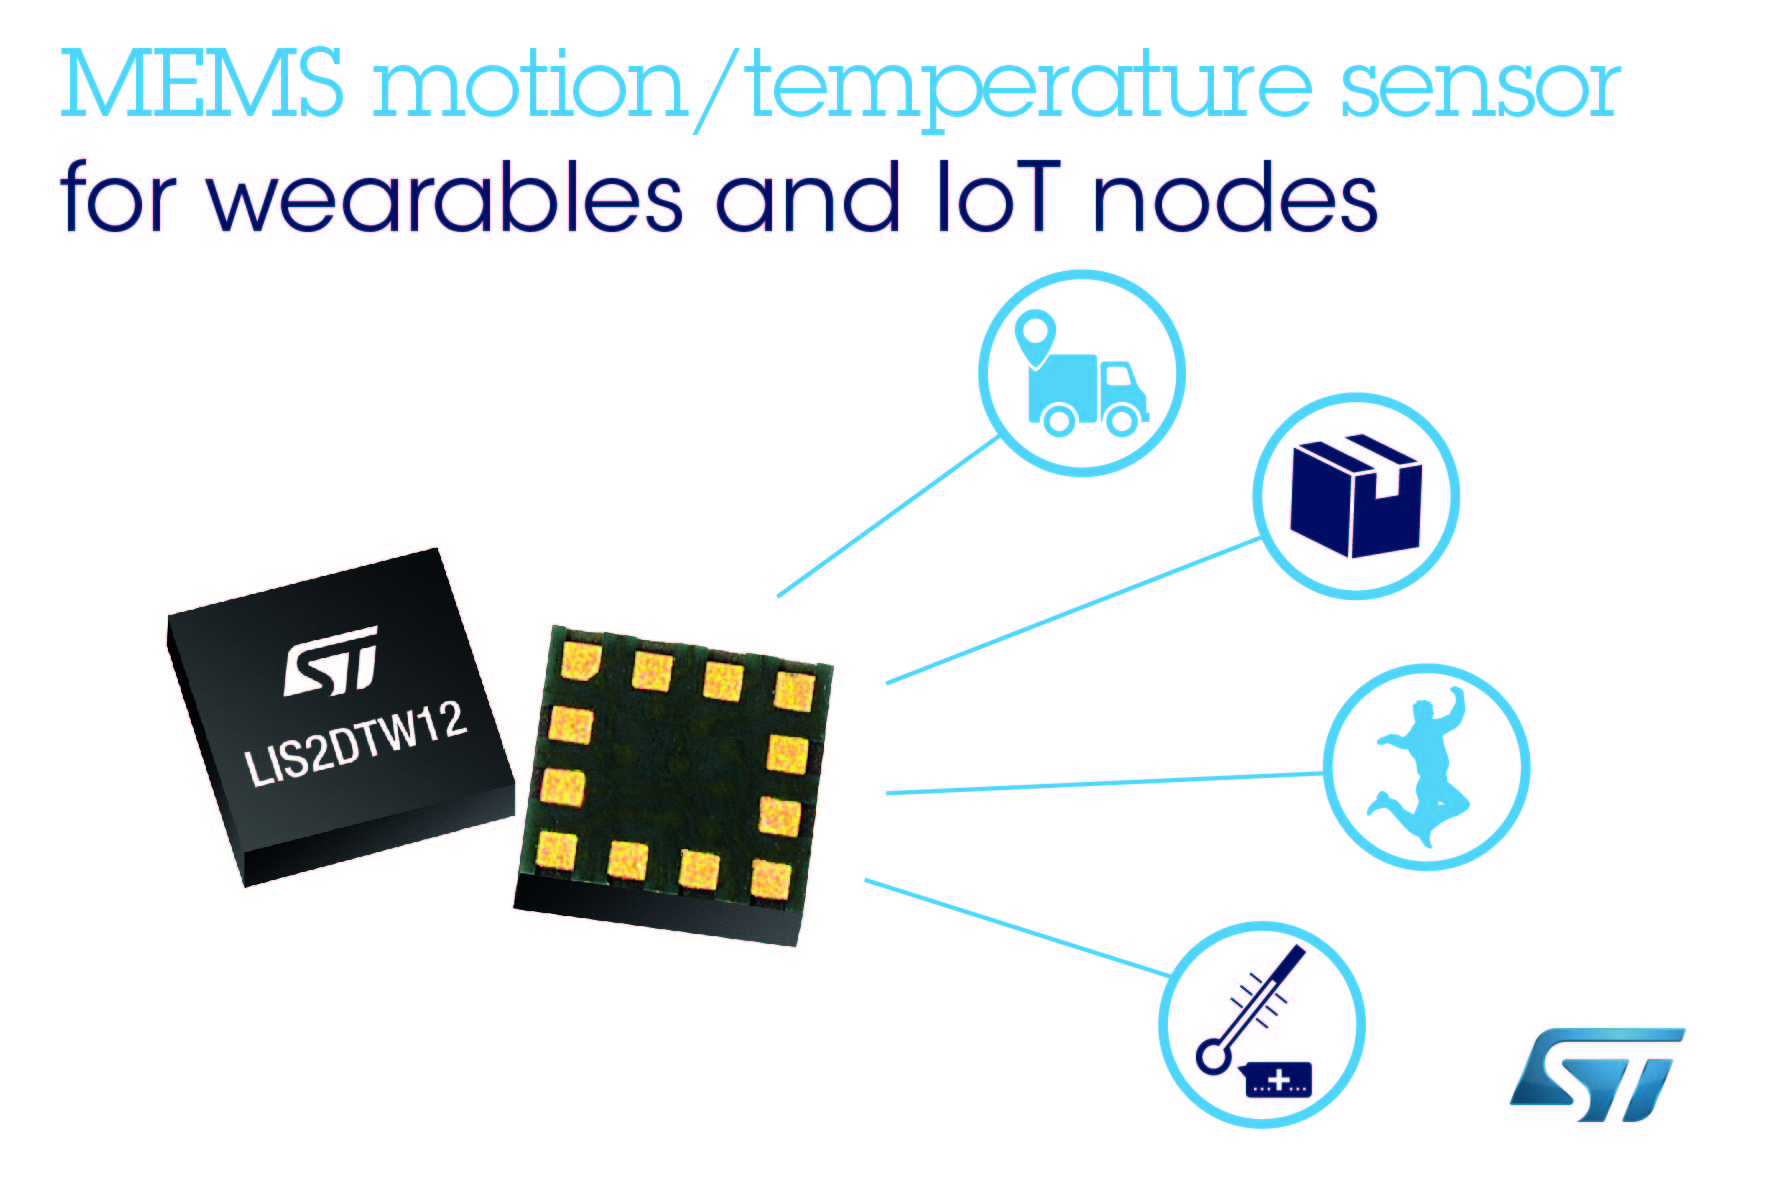 LIS2DTW12 – Temperature sensor combined with a 3-axis MEMS accelerometer